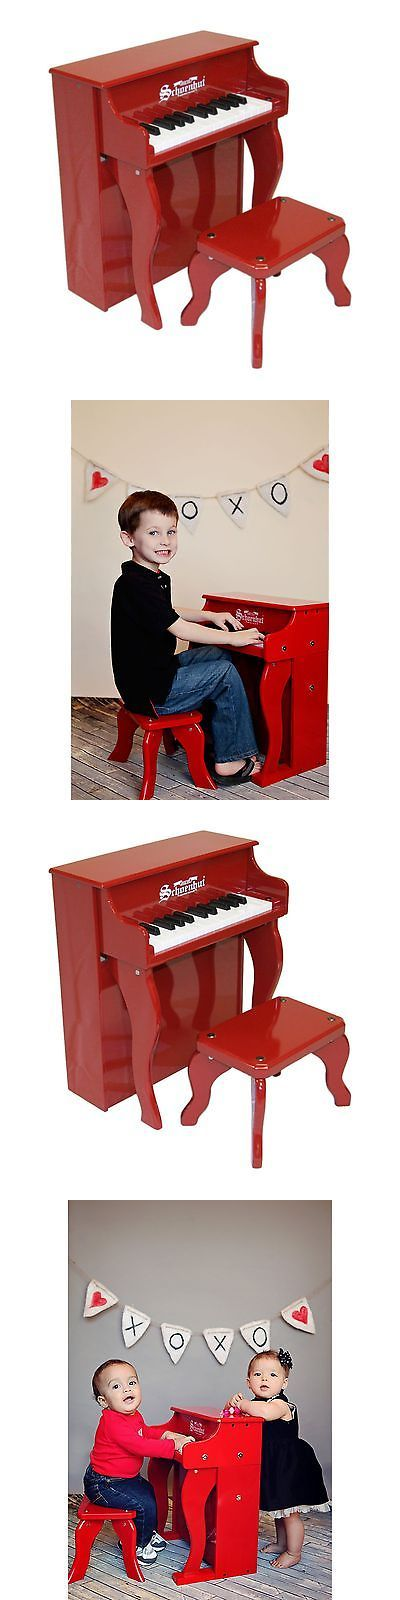 Music and Art 11735: Schoenhut 25 Key Red Elite Spinet Piano -> BUY IT NOW ONLY: $119.95 on eBay!